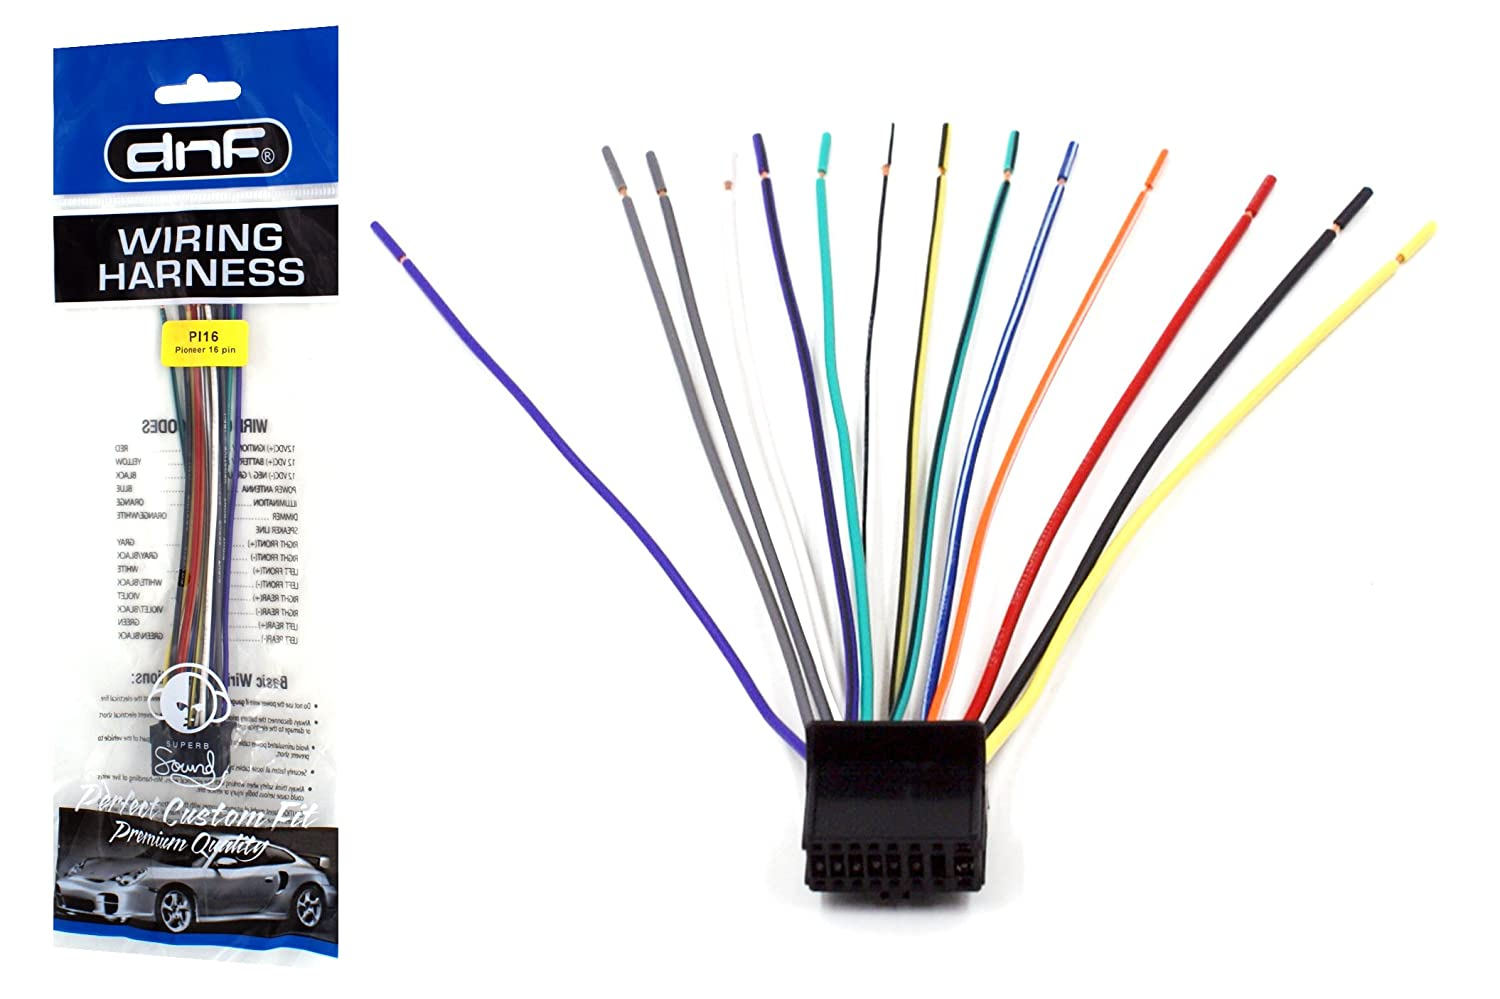 71A5xHv4deL._SL1500_ amazon com dnf pioneer wiring harness 0307 deh p4000ub deh p400ub pioneer deh p3700mp wiring diagram at panicattacktreatment.co